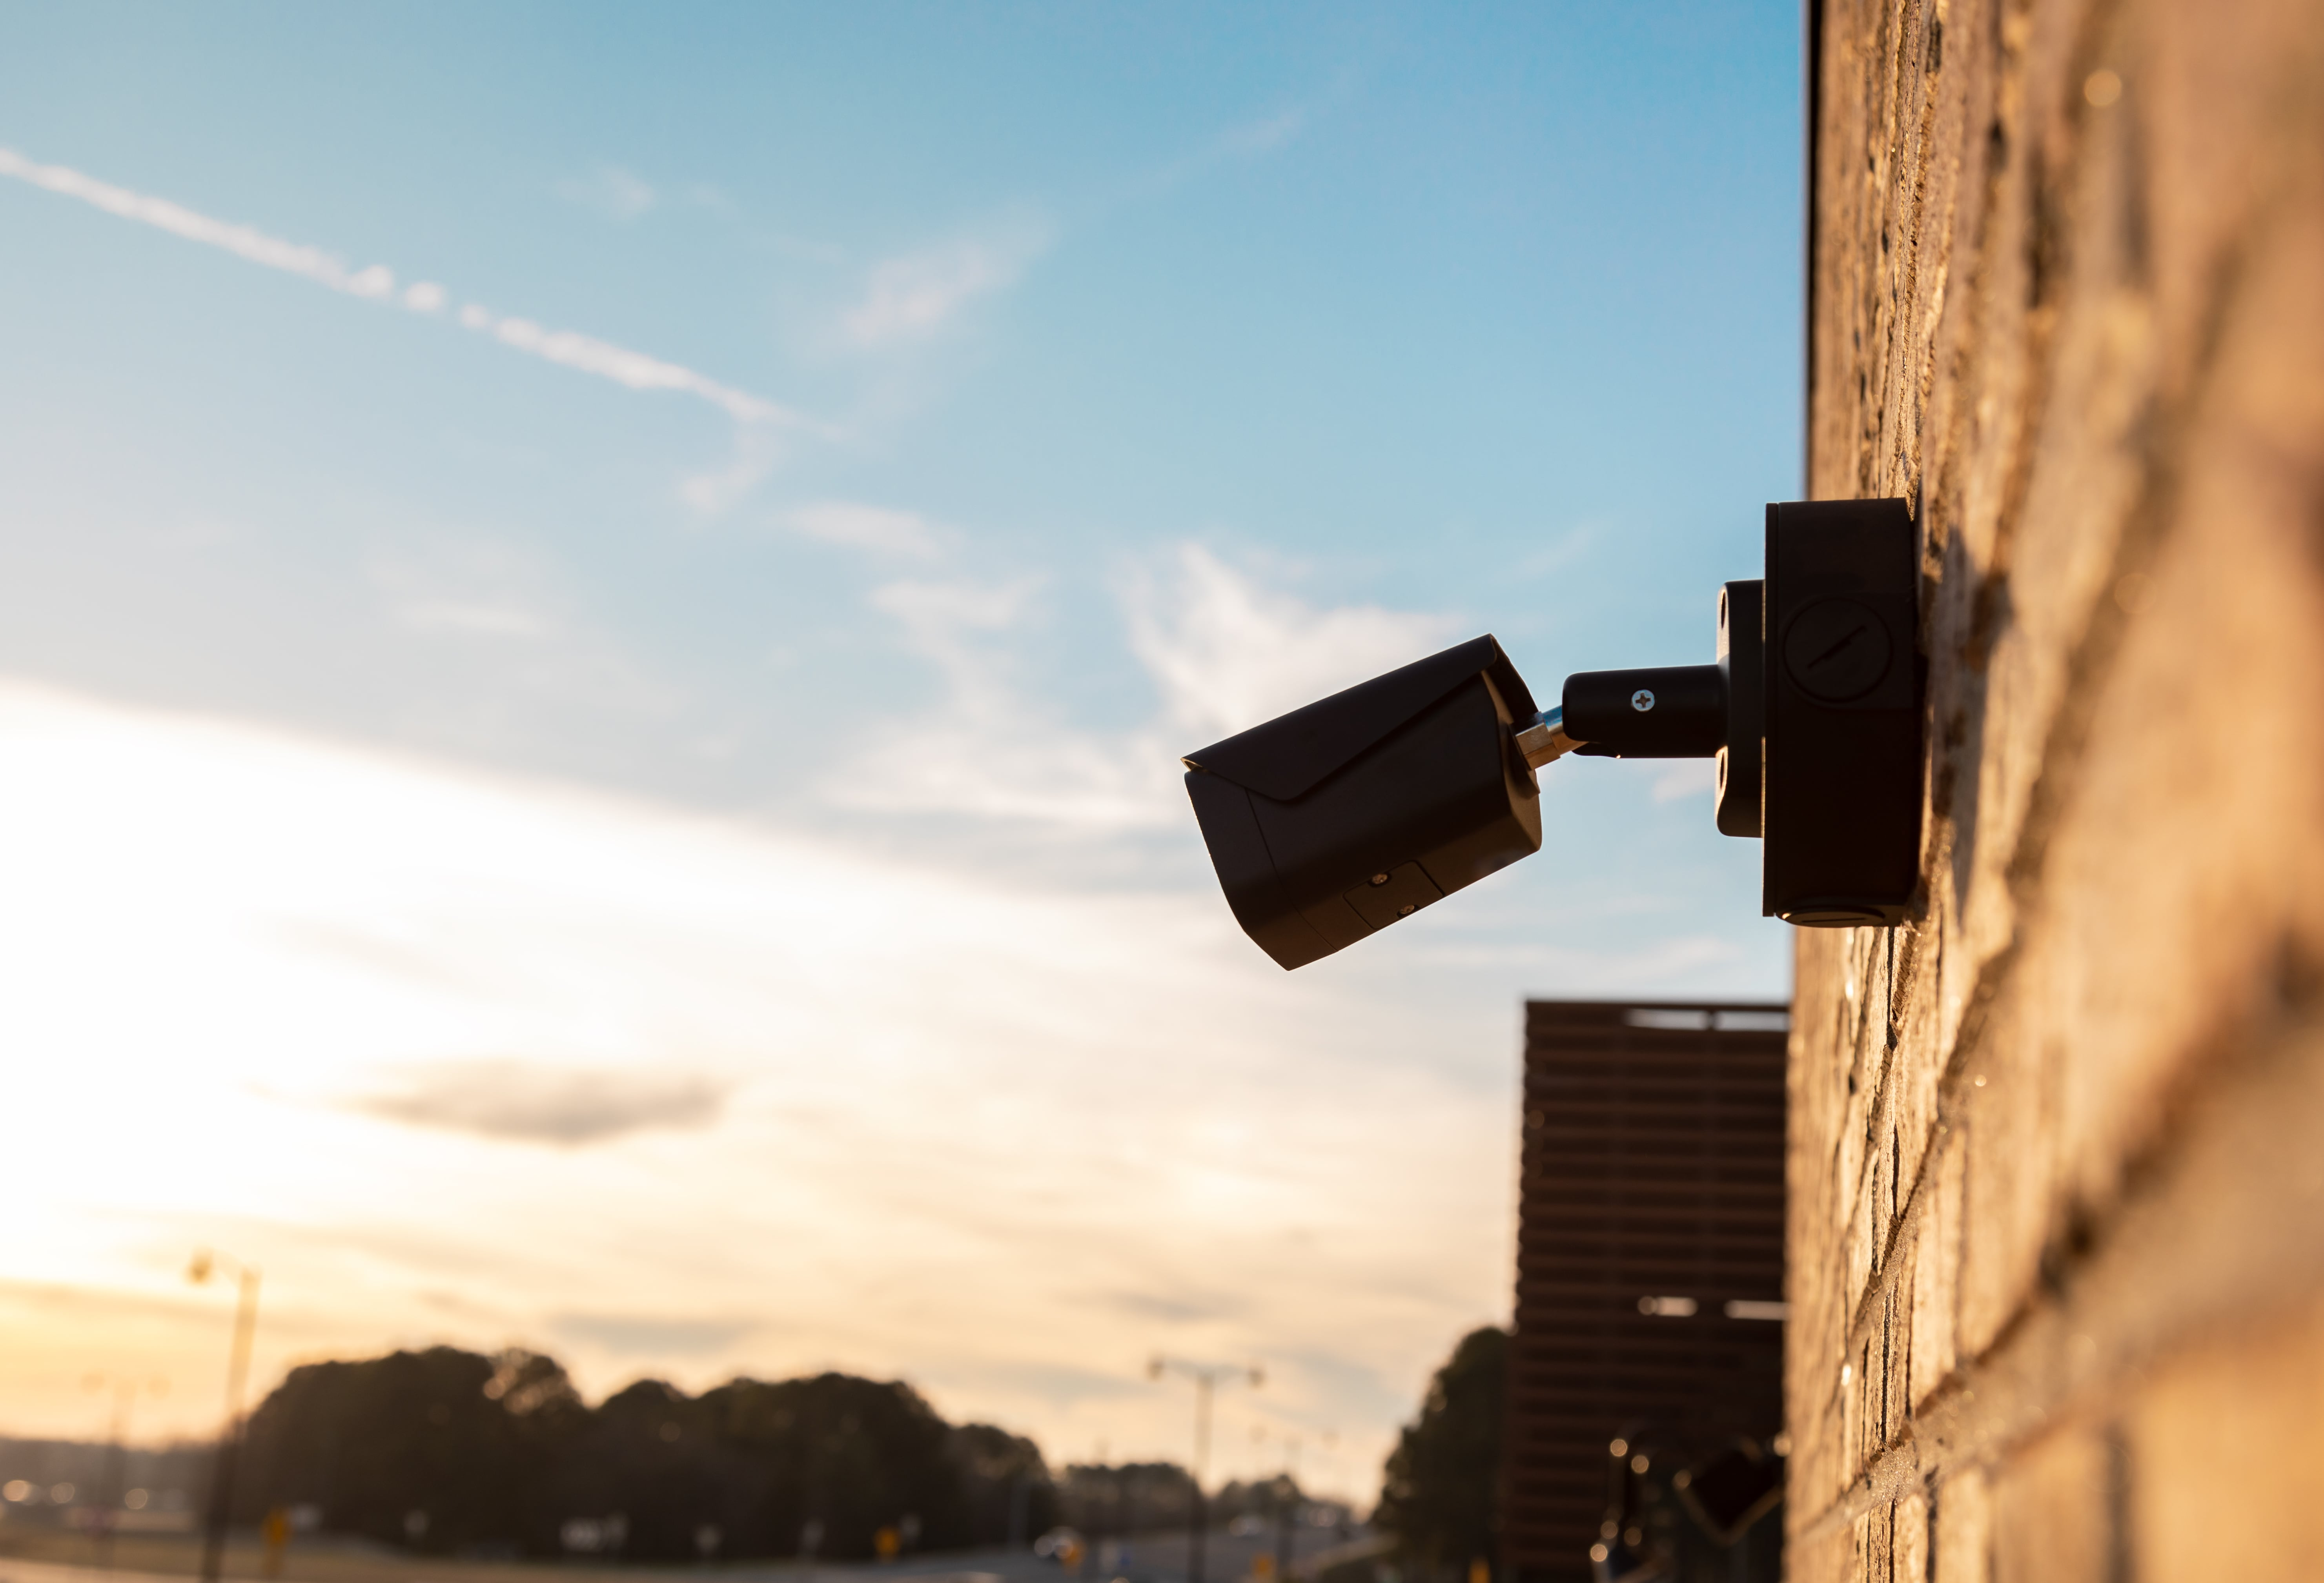 HD surveillance camera mounted to a wall outdoors